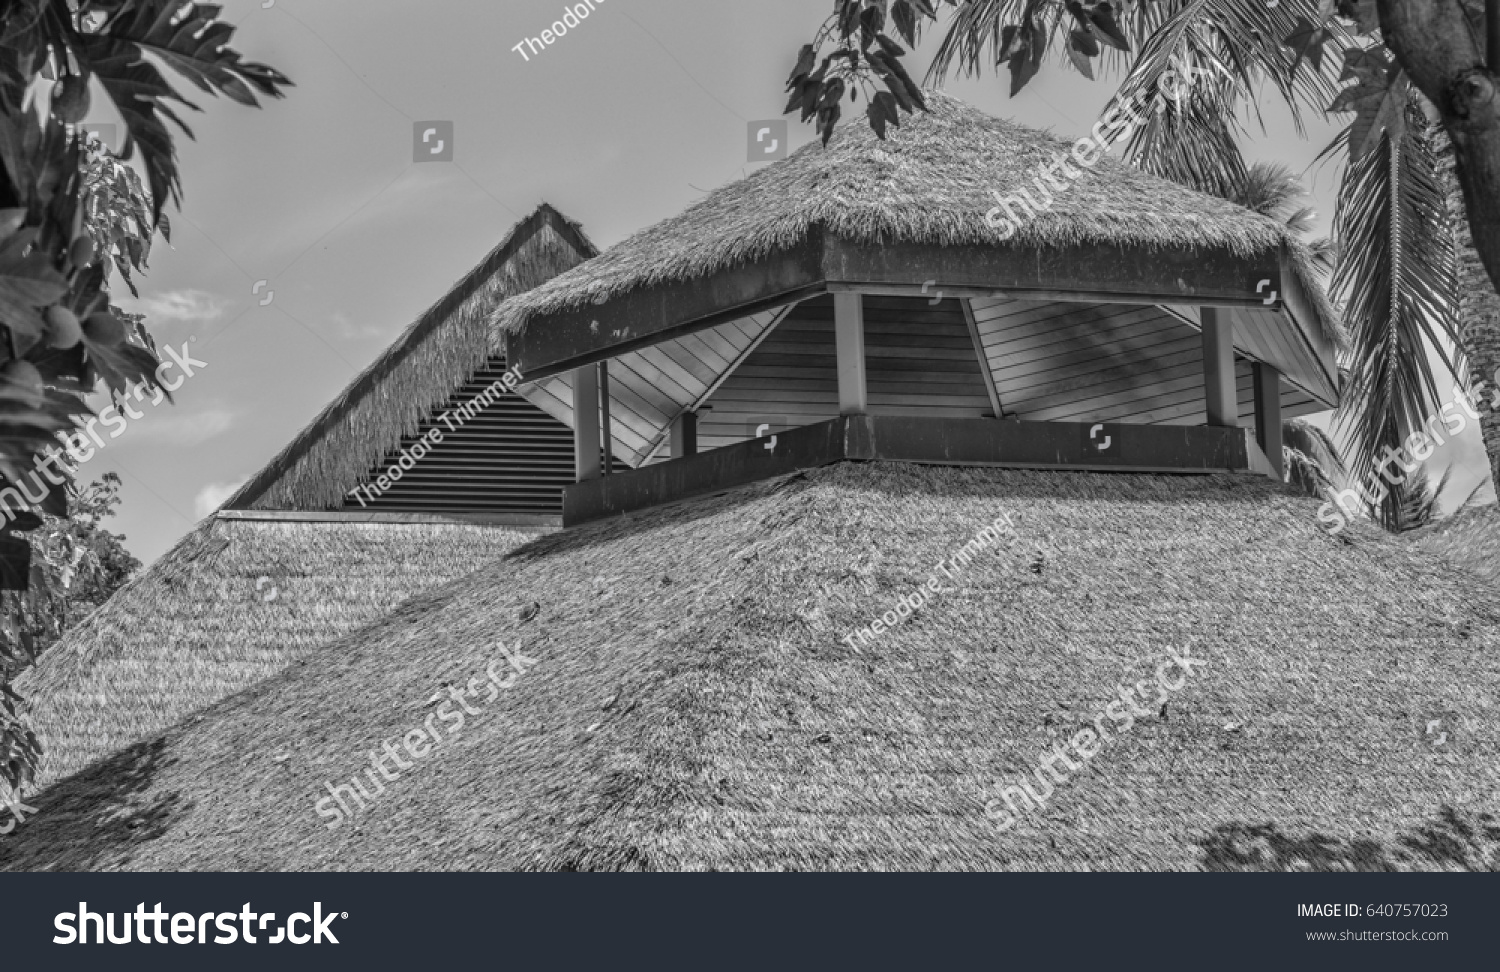 stock-photo-polynesian-thatched-grass-roof-with-wooden-struts-and-tropical-palm-and-plants-surrounding-640757023.jpg